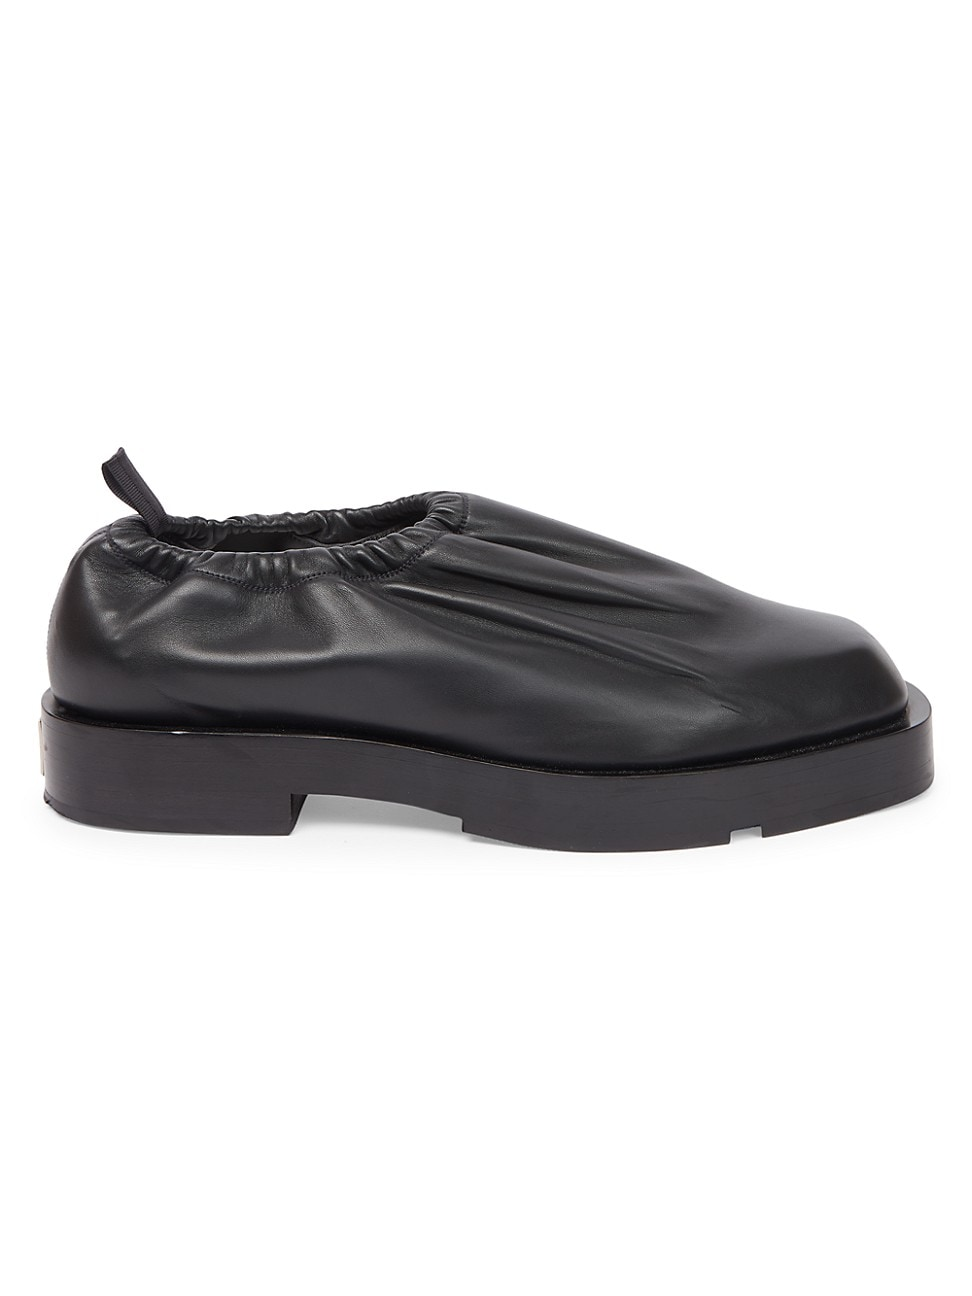 Givenchy MEN'S SHOW LEATHER SLIP-ON SHOES